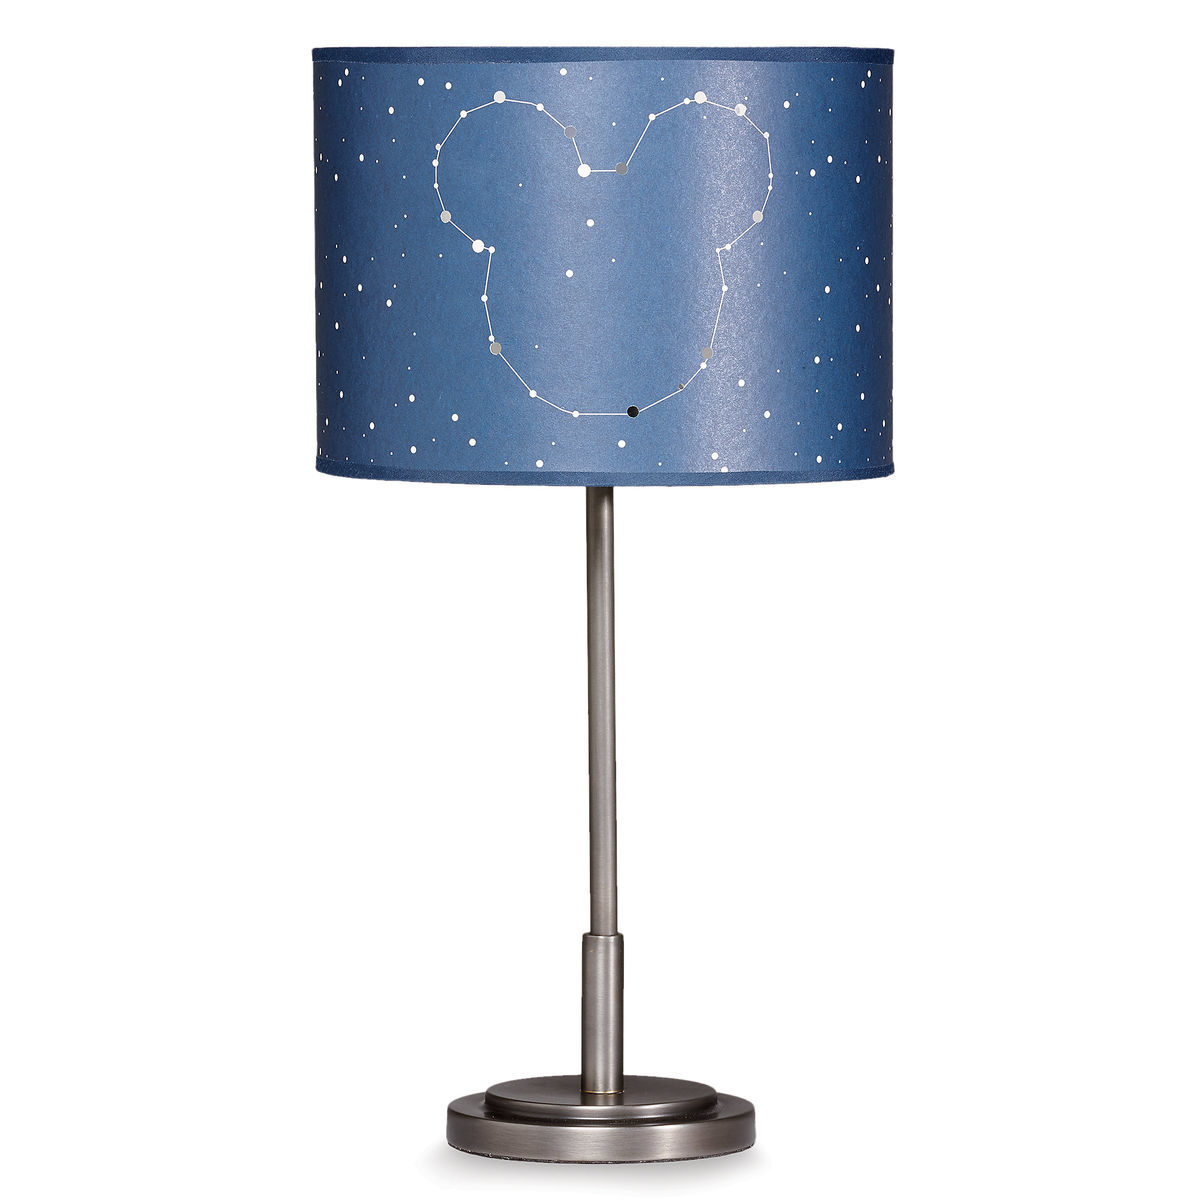 Mickey mouse constellation accent lamp by ethan allen shopdisney product image of mickey mouse constellation accent lamp by ethan allen 1 aloadofball Images